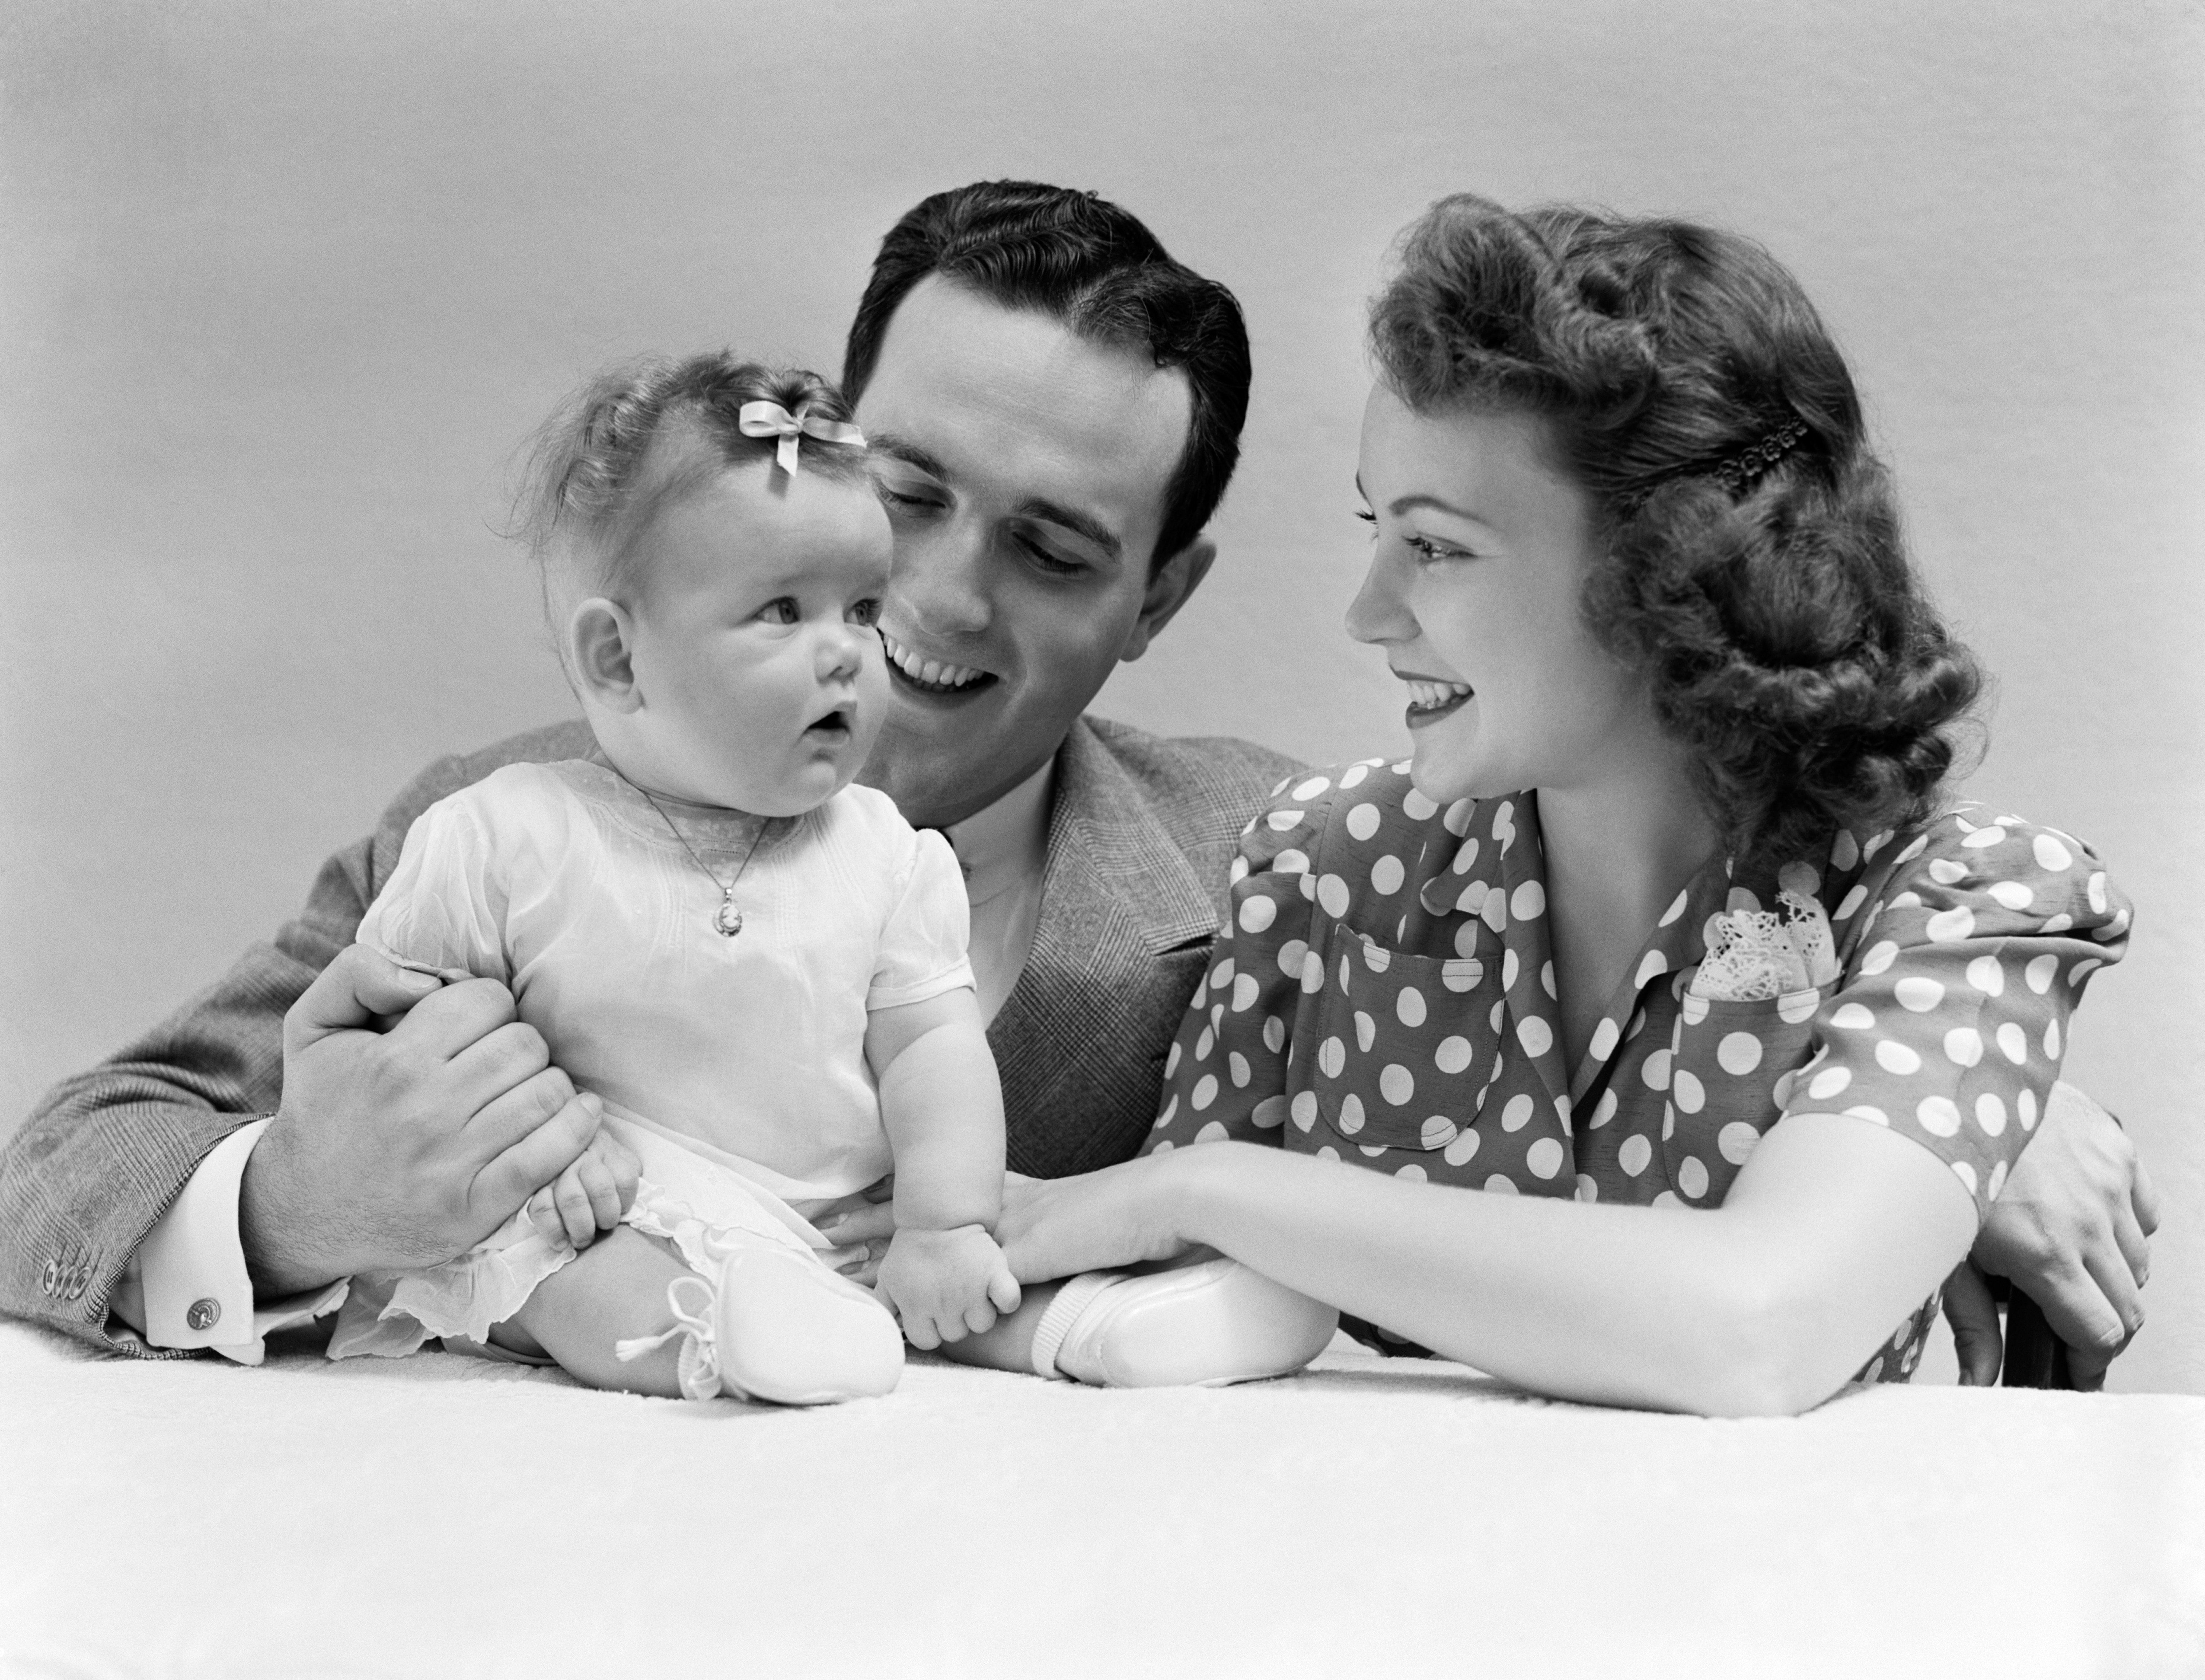 Mary, Carol and Sandra are a few of the names that dominated the '40s.